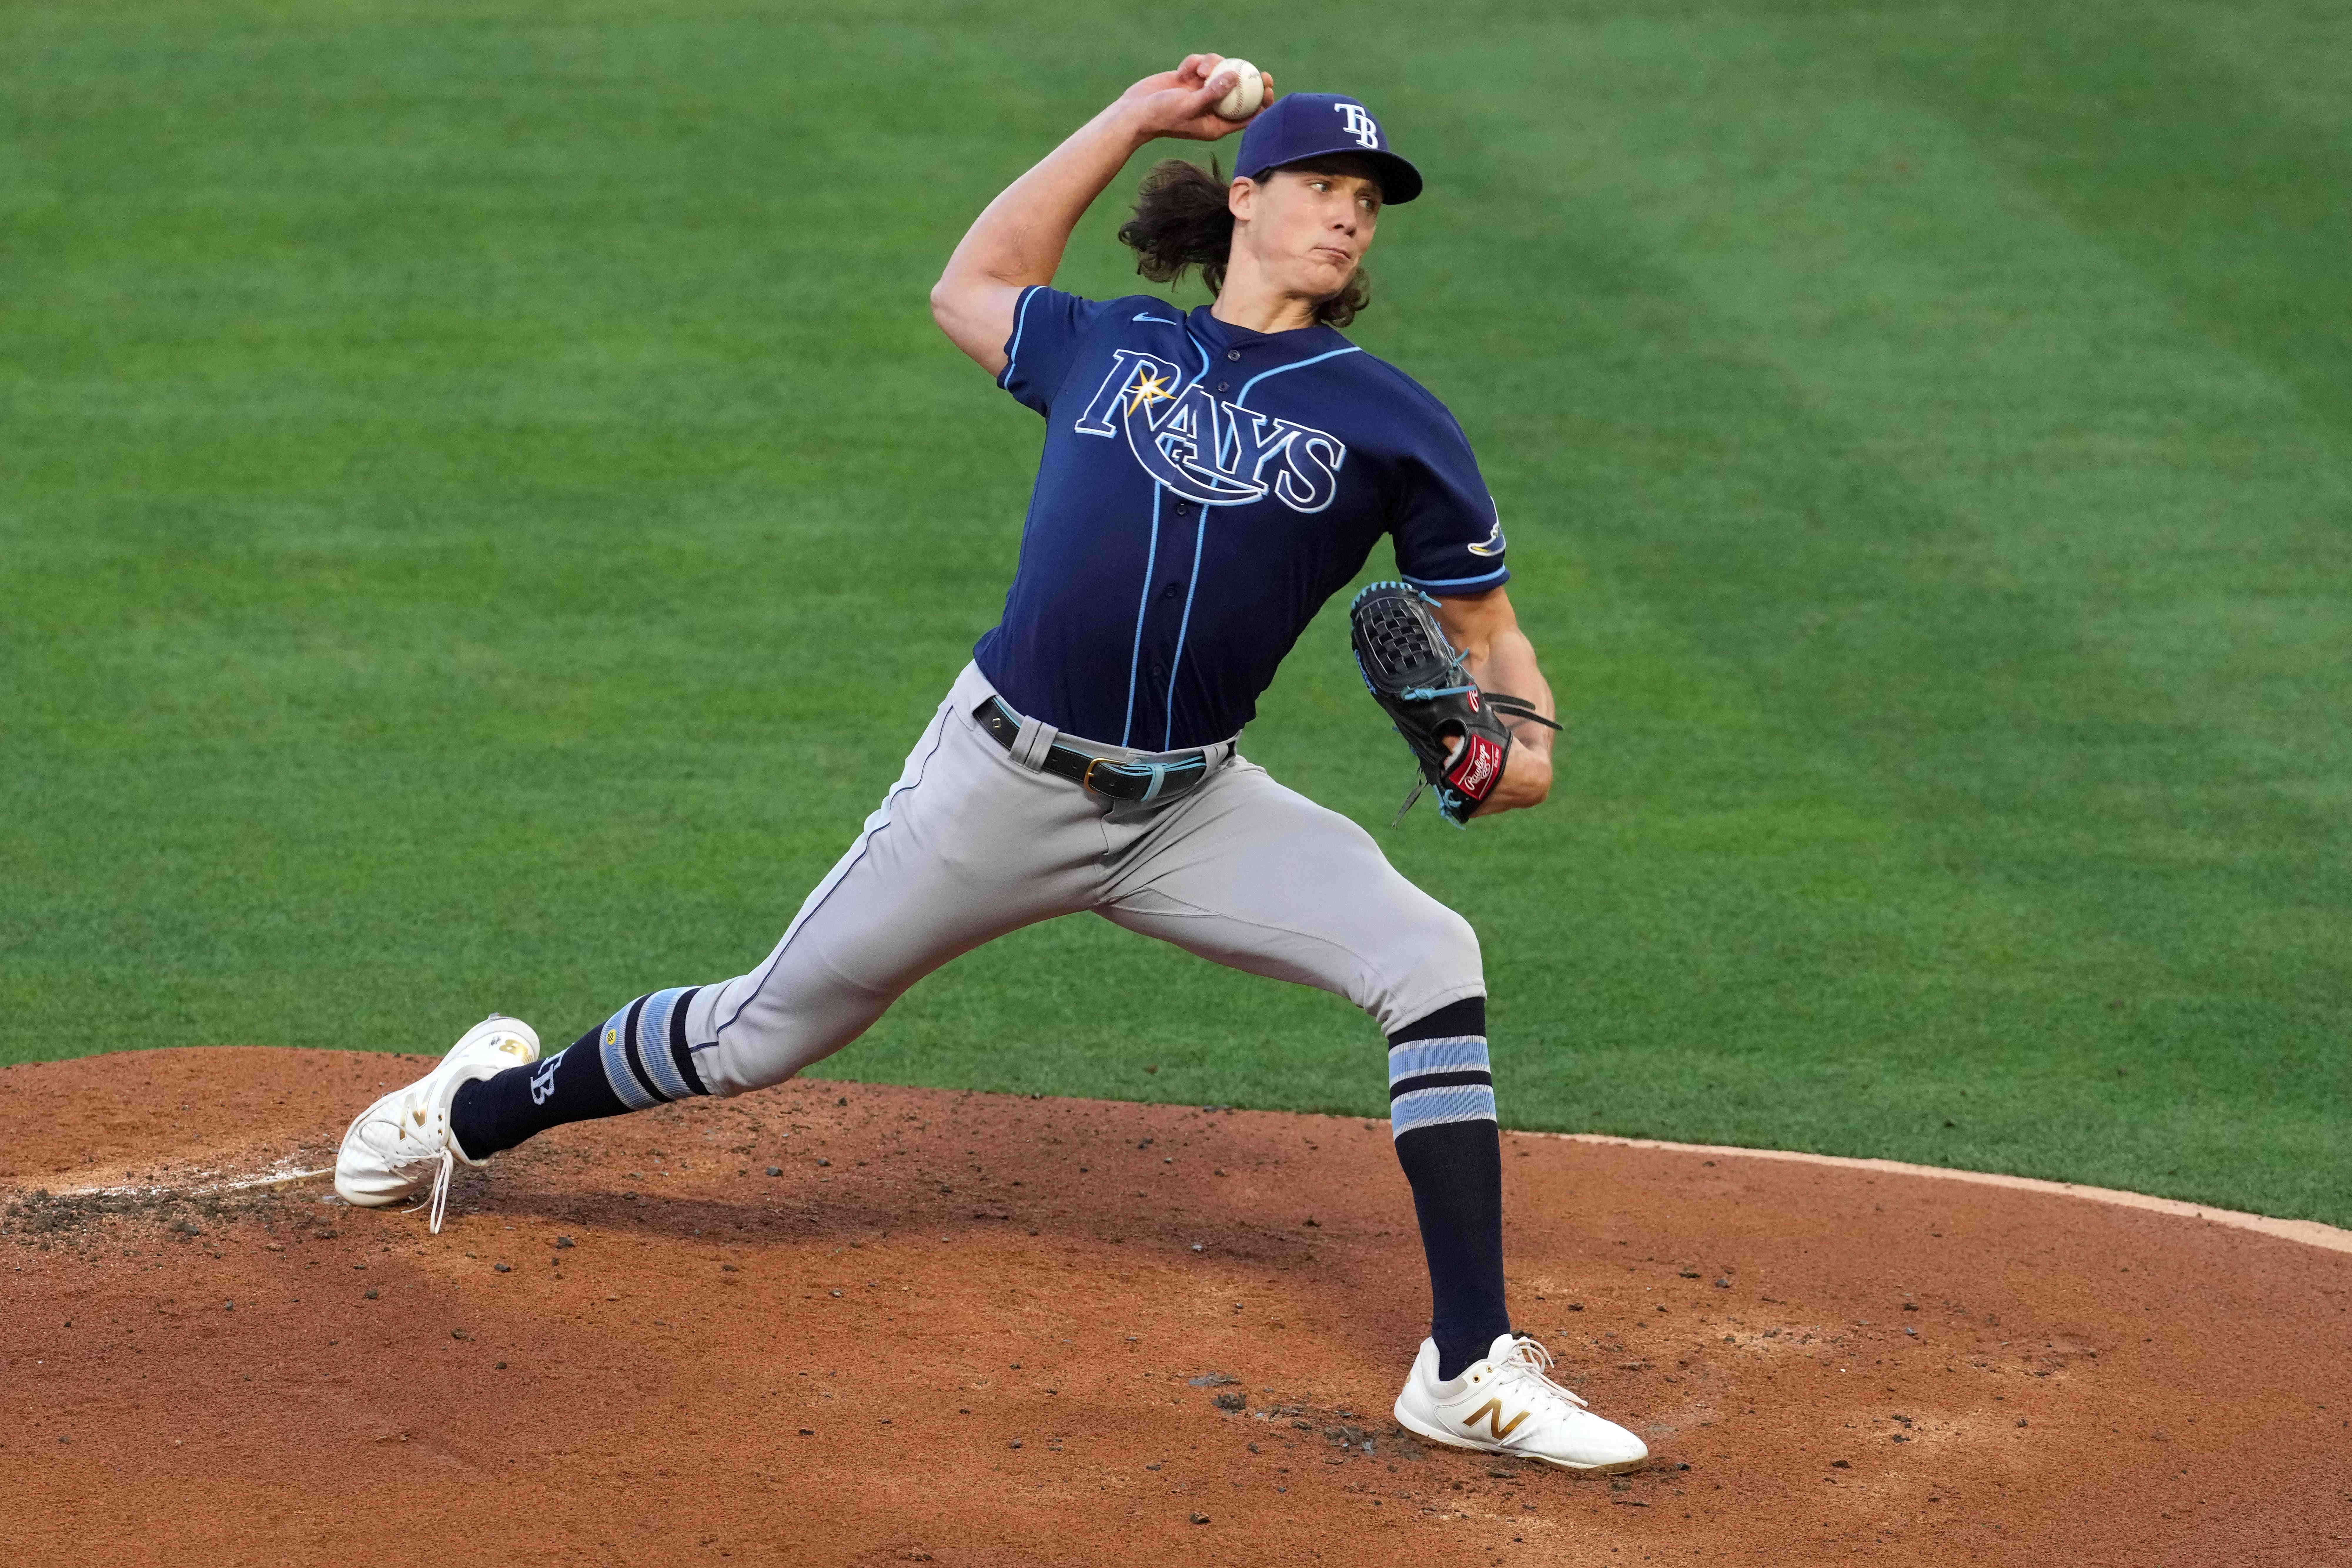 May 3, 2021; Anaheim, California, USA; Tampa Bay Rays starting pitcher Tyler Glasnow (20) delivers a pitch in the first inning against the Los Angeles Angels  at Angel Stadium. Mandatory Credit: Kirby Lee-USA TODAY Sports